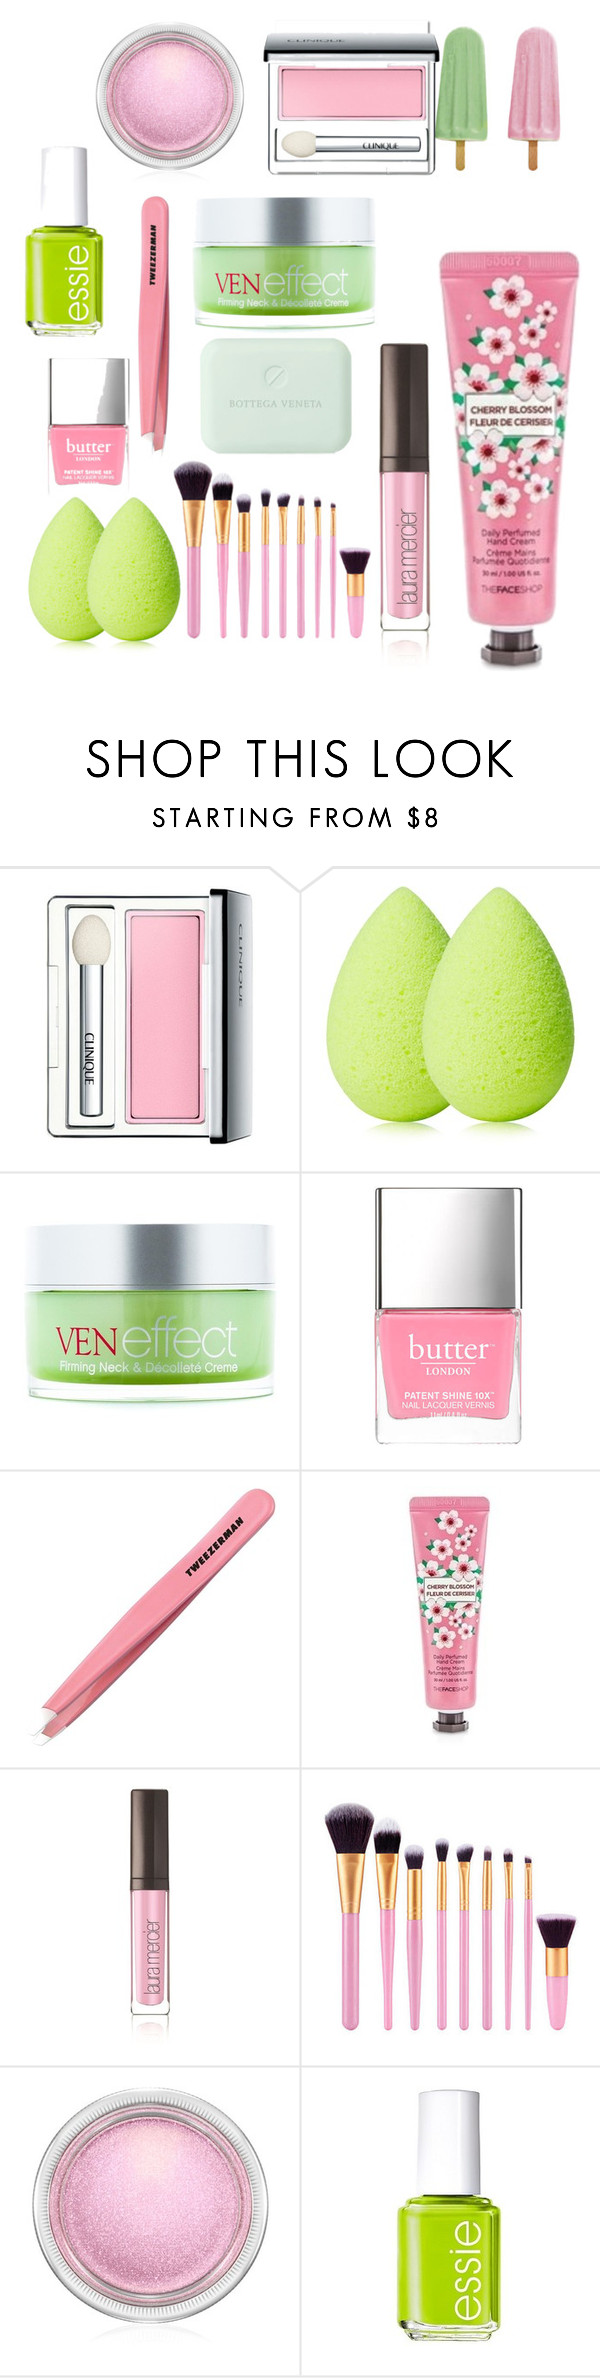 """Day At The Spa 😛🙌🏽"" by theyadoretrisha ❤ liked on Polyvore featuring Clinique, beautyblender, VenEffect, Butter London, Tweezerman, The Face Shop, Laura Mercier, MAC Cosmetics, Essie and Bottega Veneta"